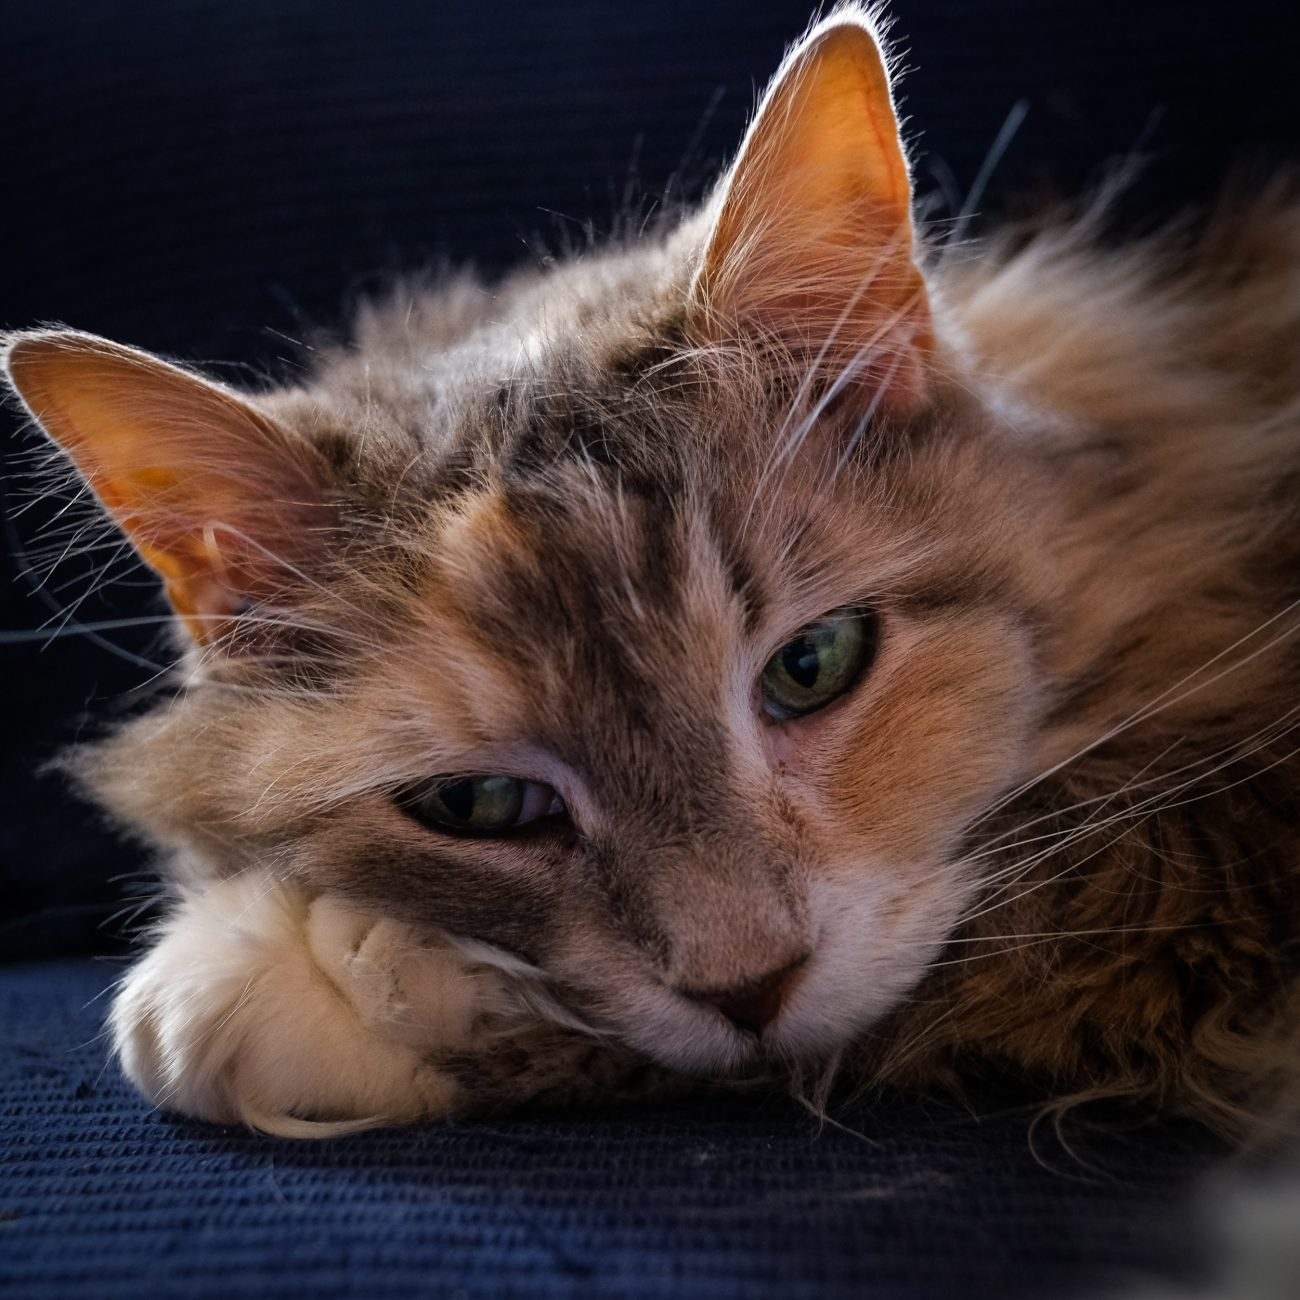 Photograph of a Maine Coon Cat